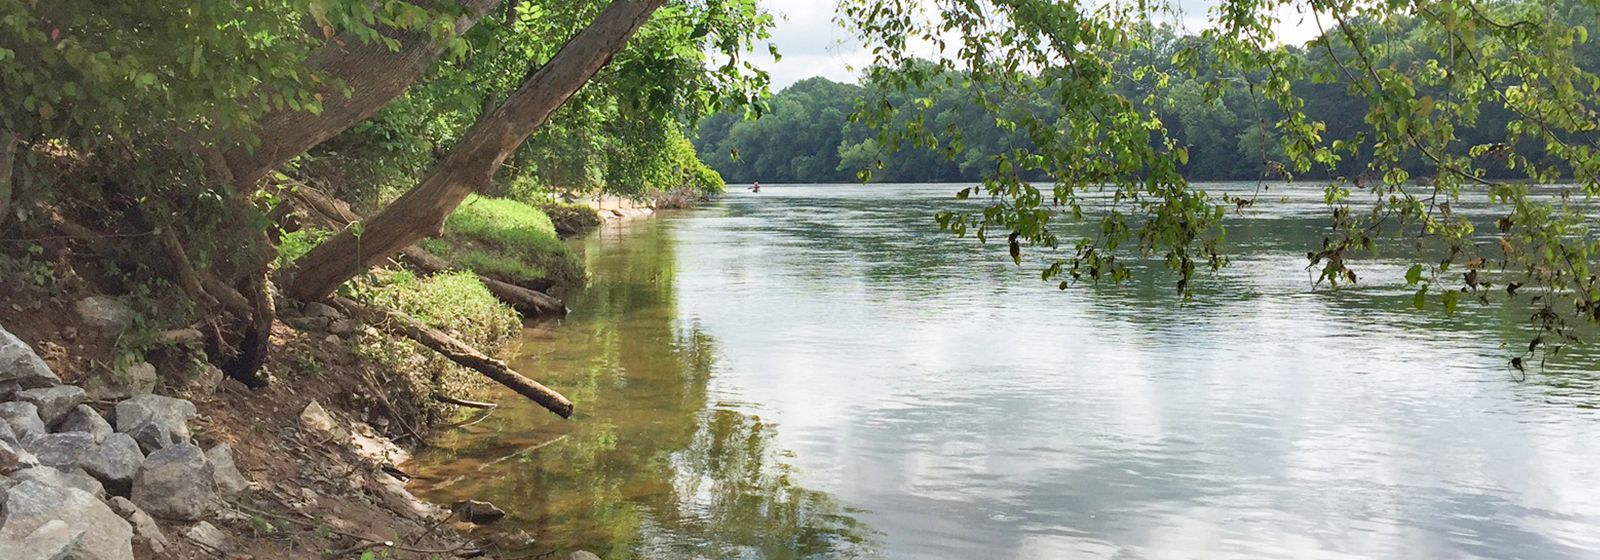 When nature calls on the Catawba-Wateree River